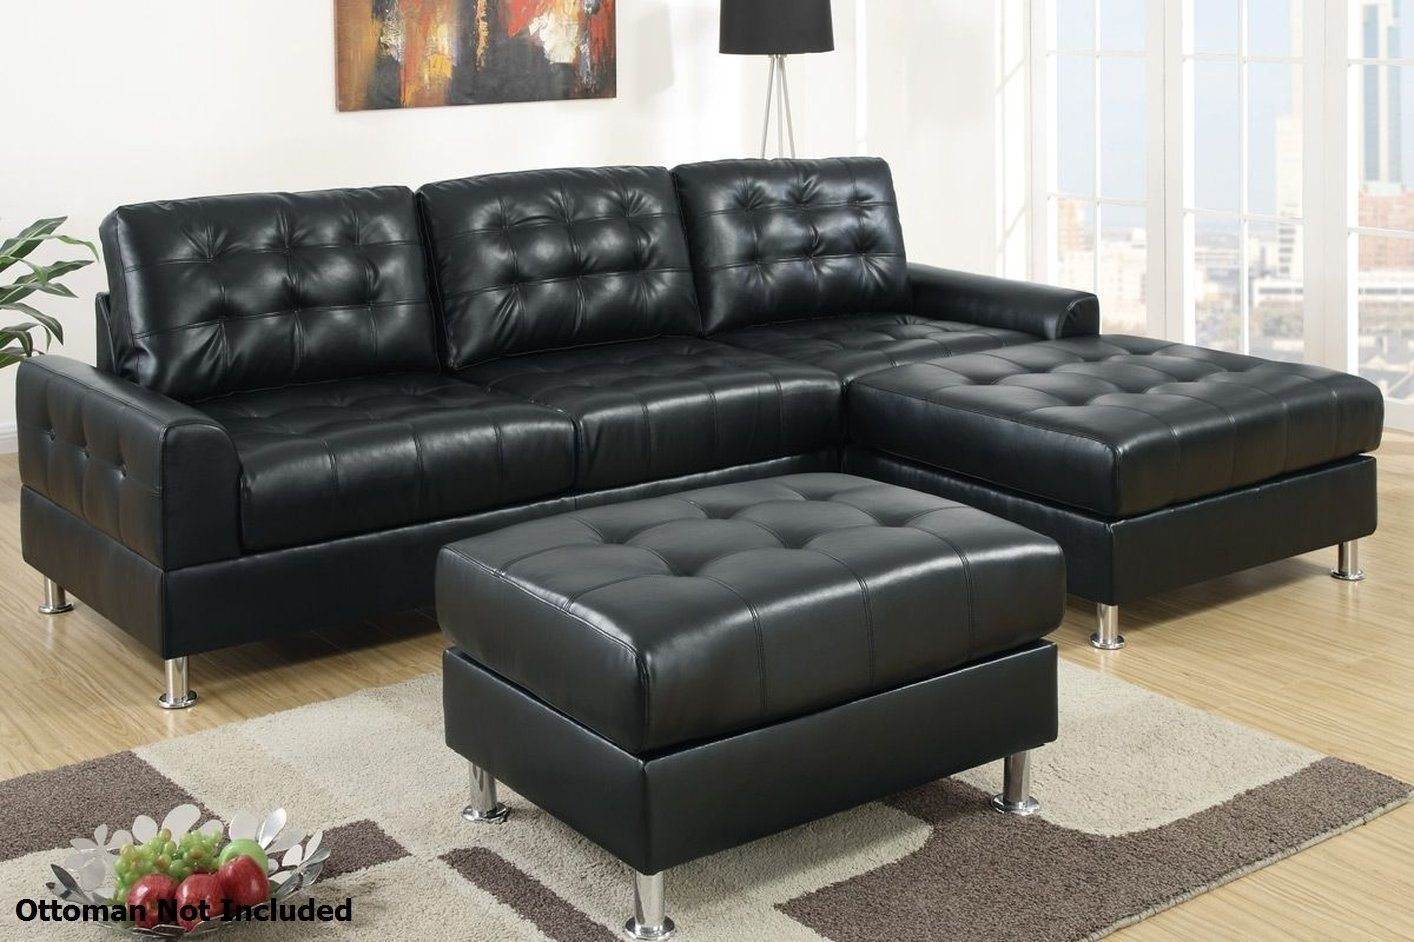 Beautiful Black Leather Sectional Sofa 86 For Sofa Room Ideas With Black  Leather Sectional Sofa